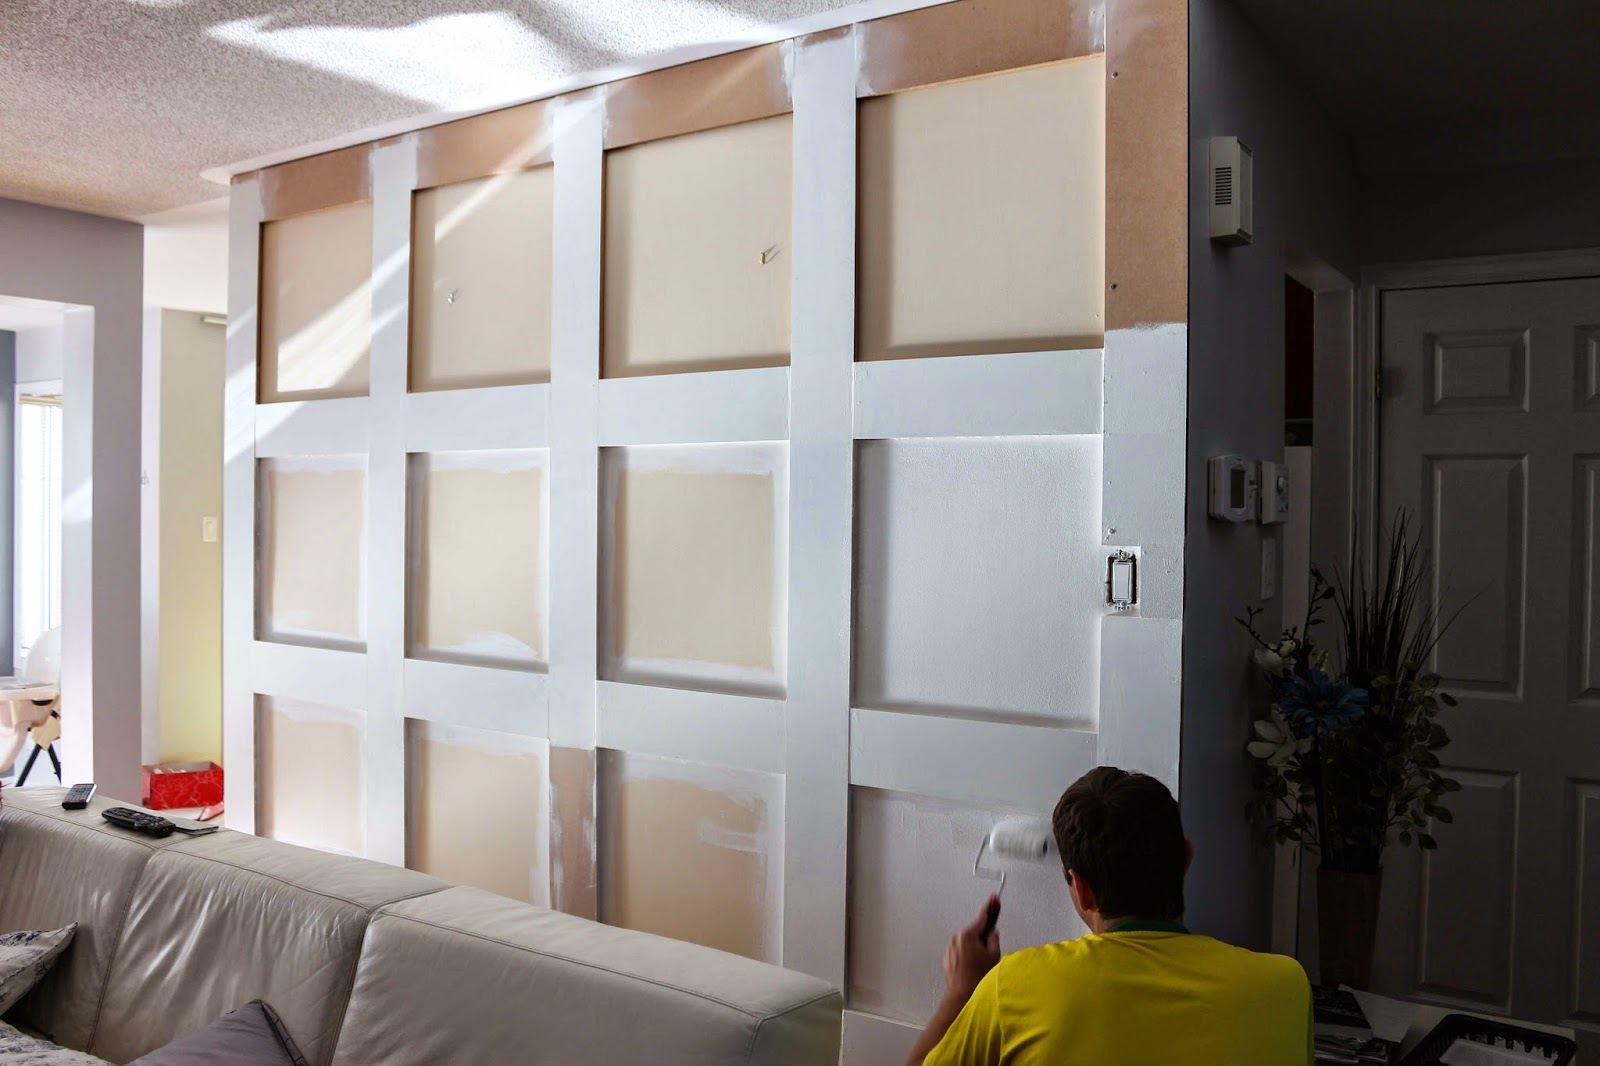 Square Wall Paneling : Square wall panels like a new home